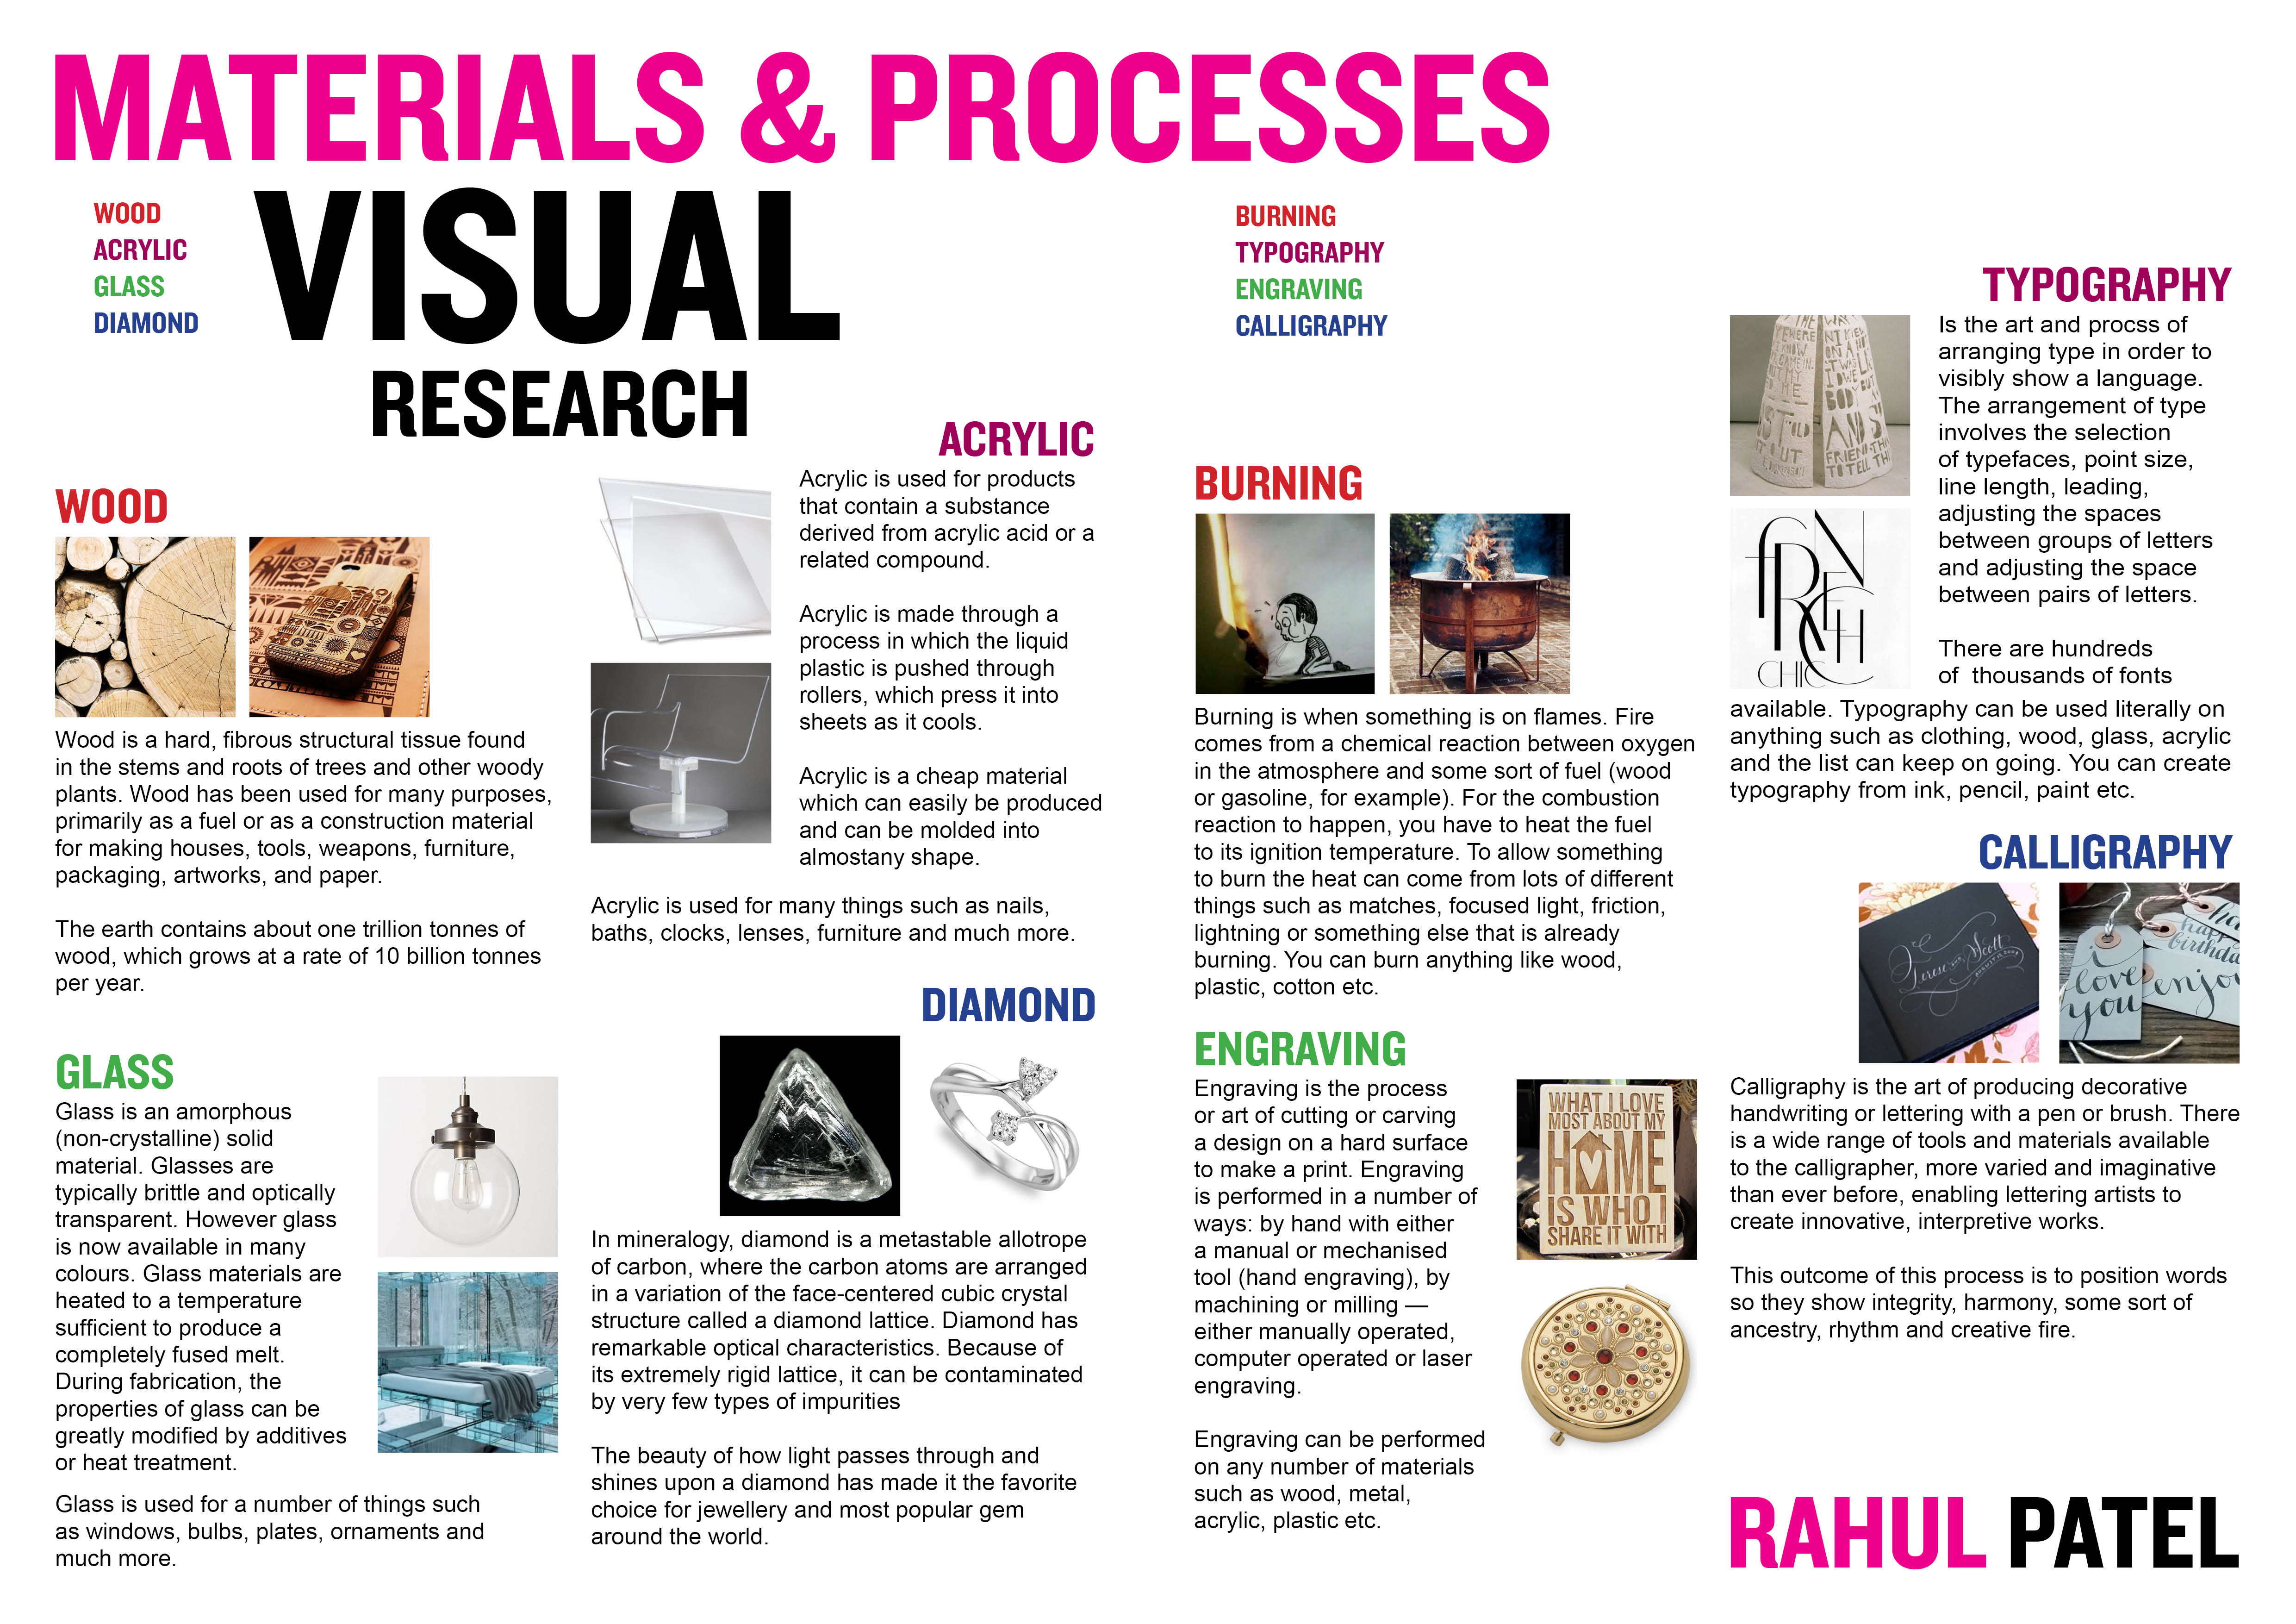 A3 Materials and Processes Visual Research board | Rahul Patel